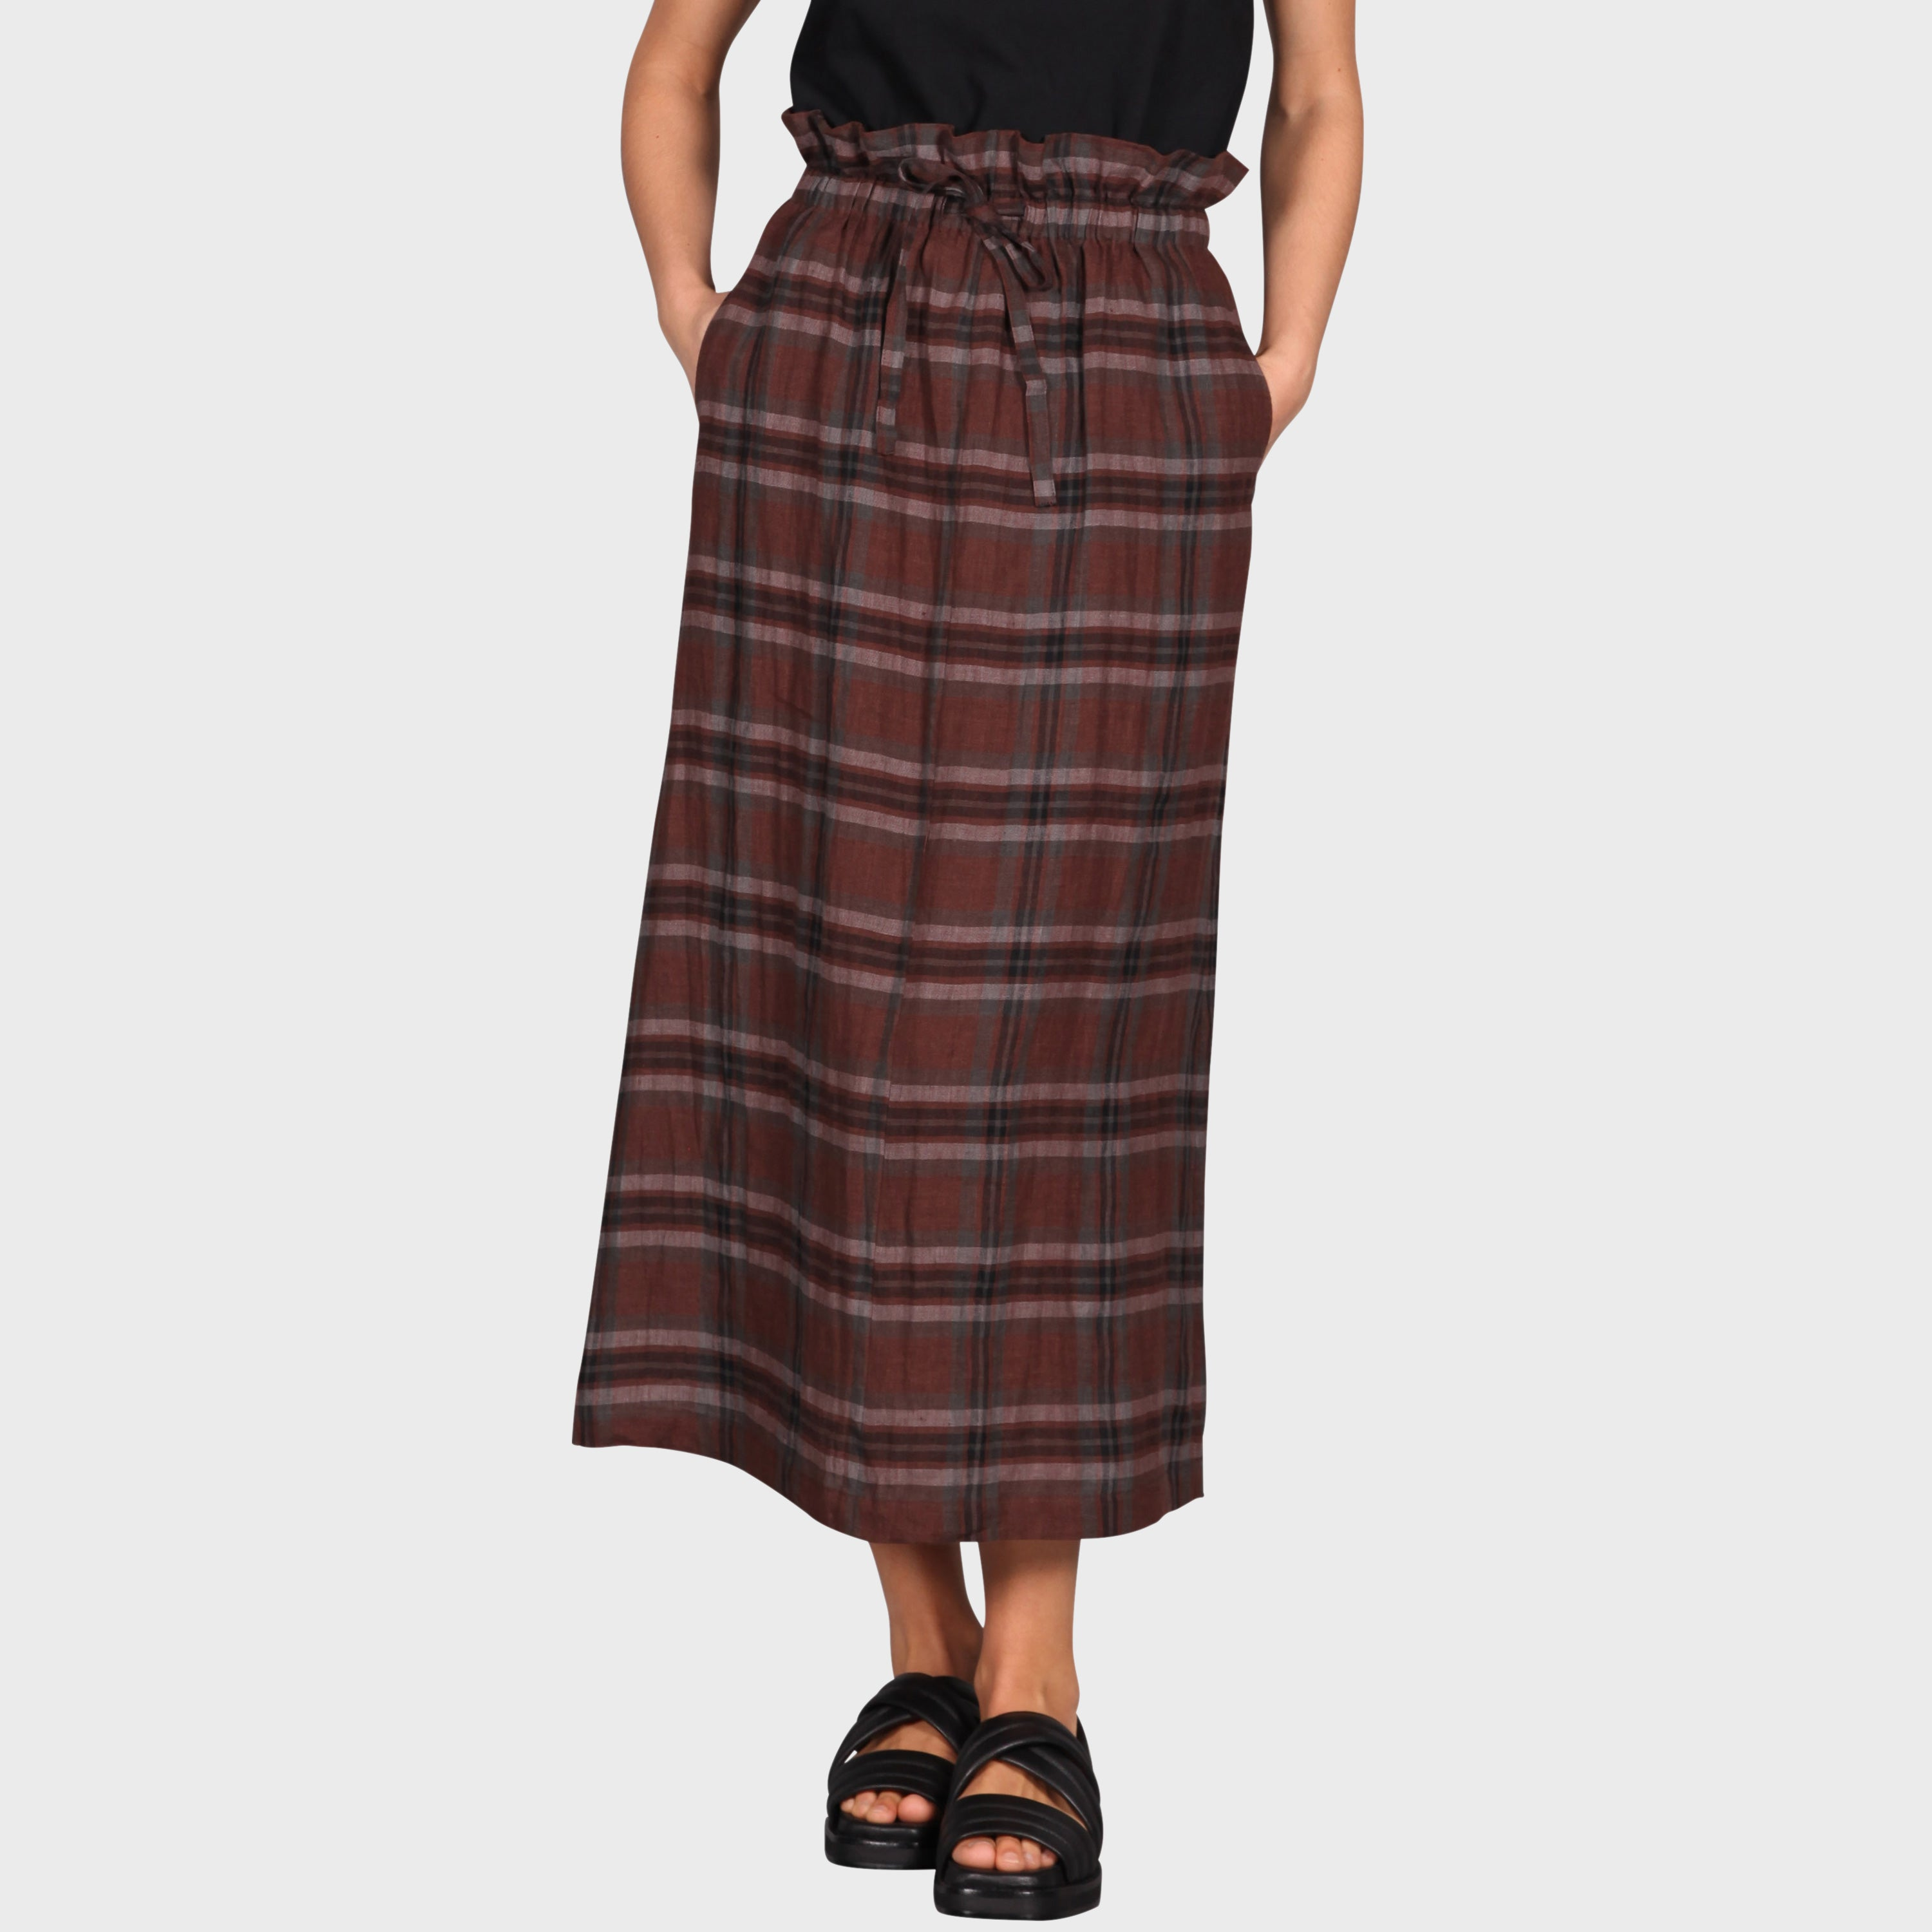 POLLY SKIRT / BROWN-BLACK